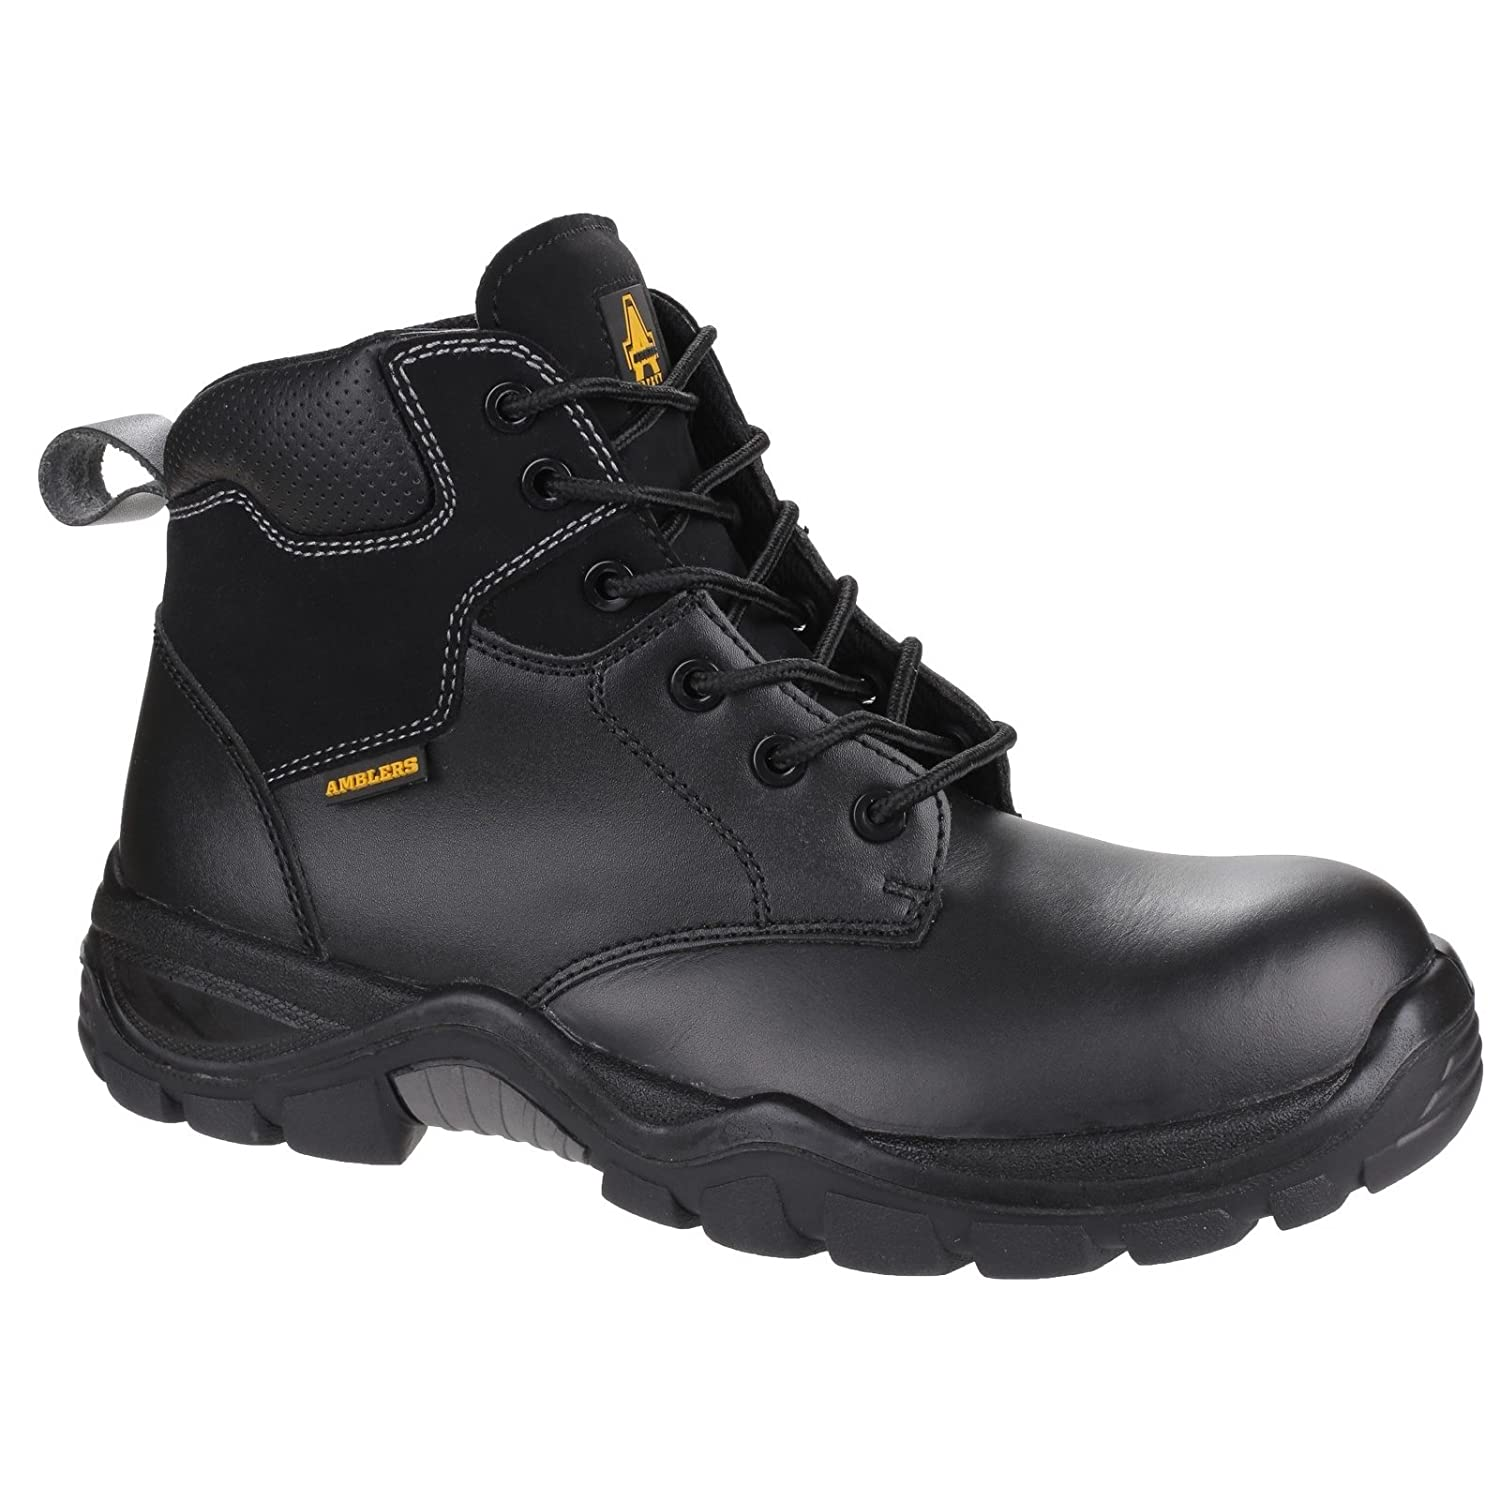 AS302C Metal-free Water-Resistant Lace up Safety avvio UK 7 EU 41